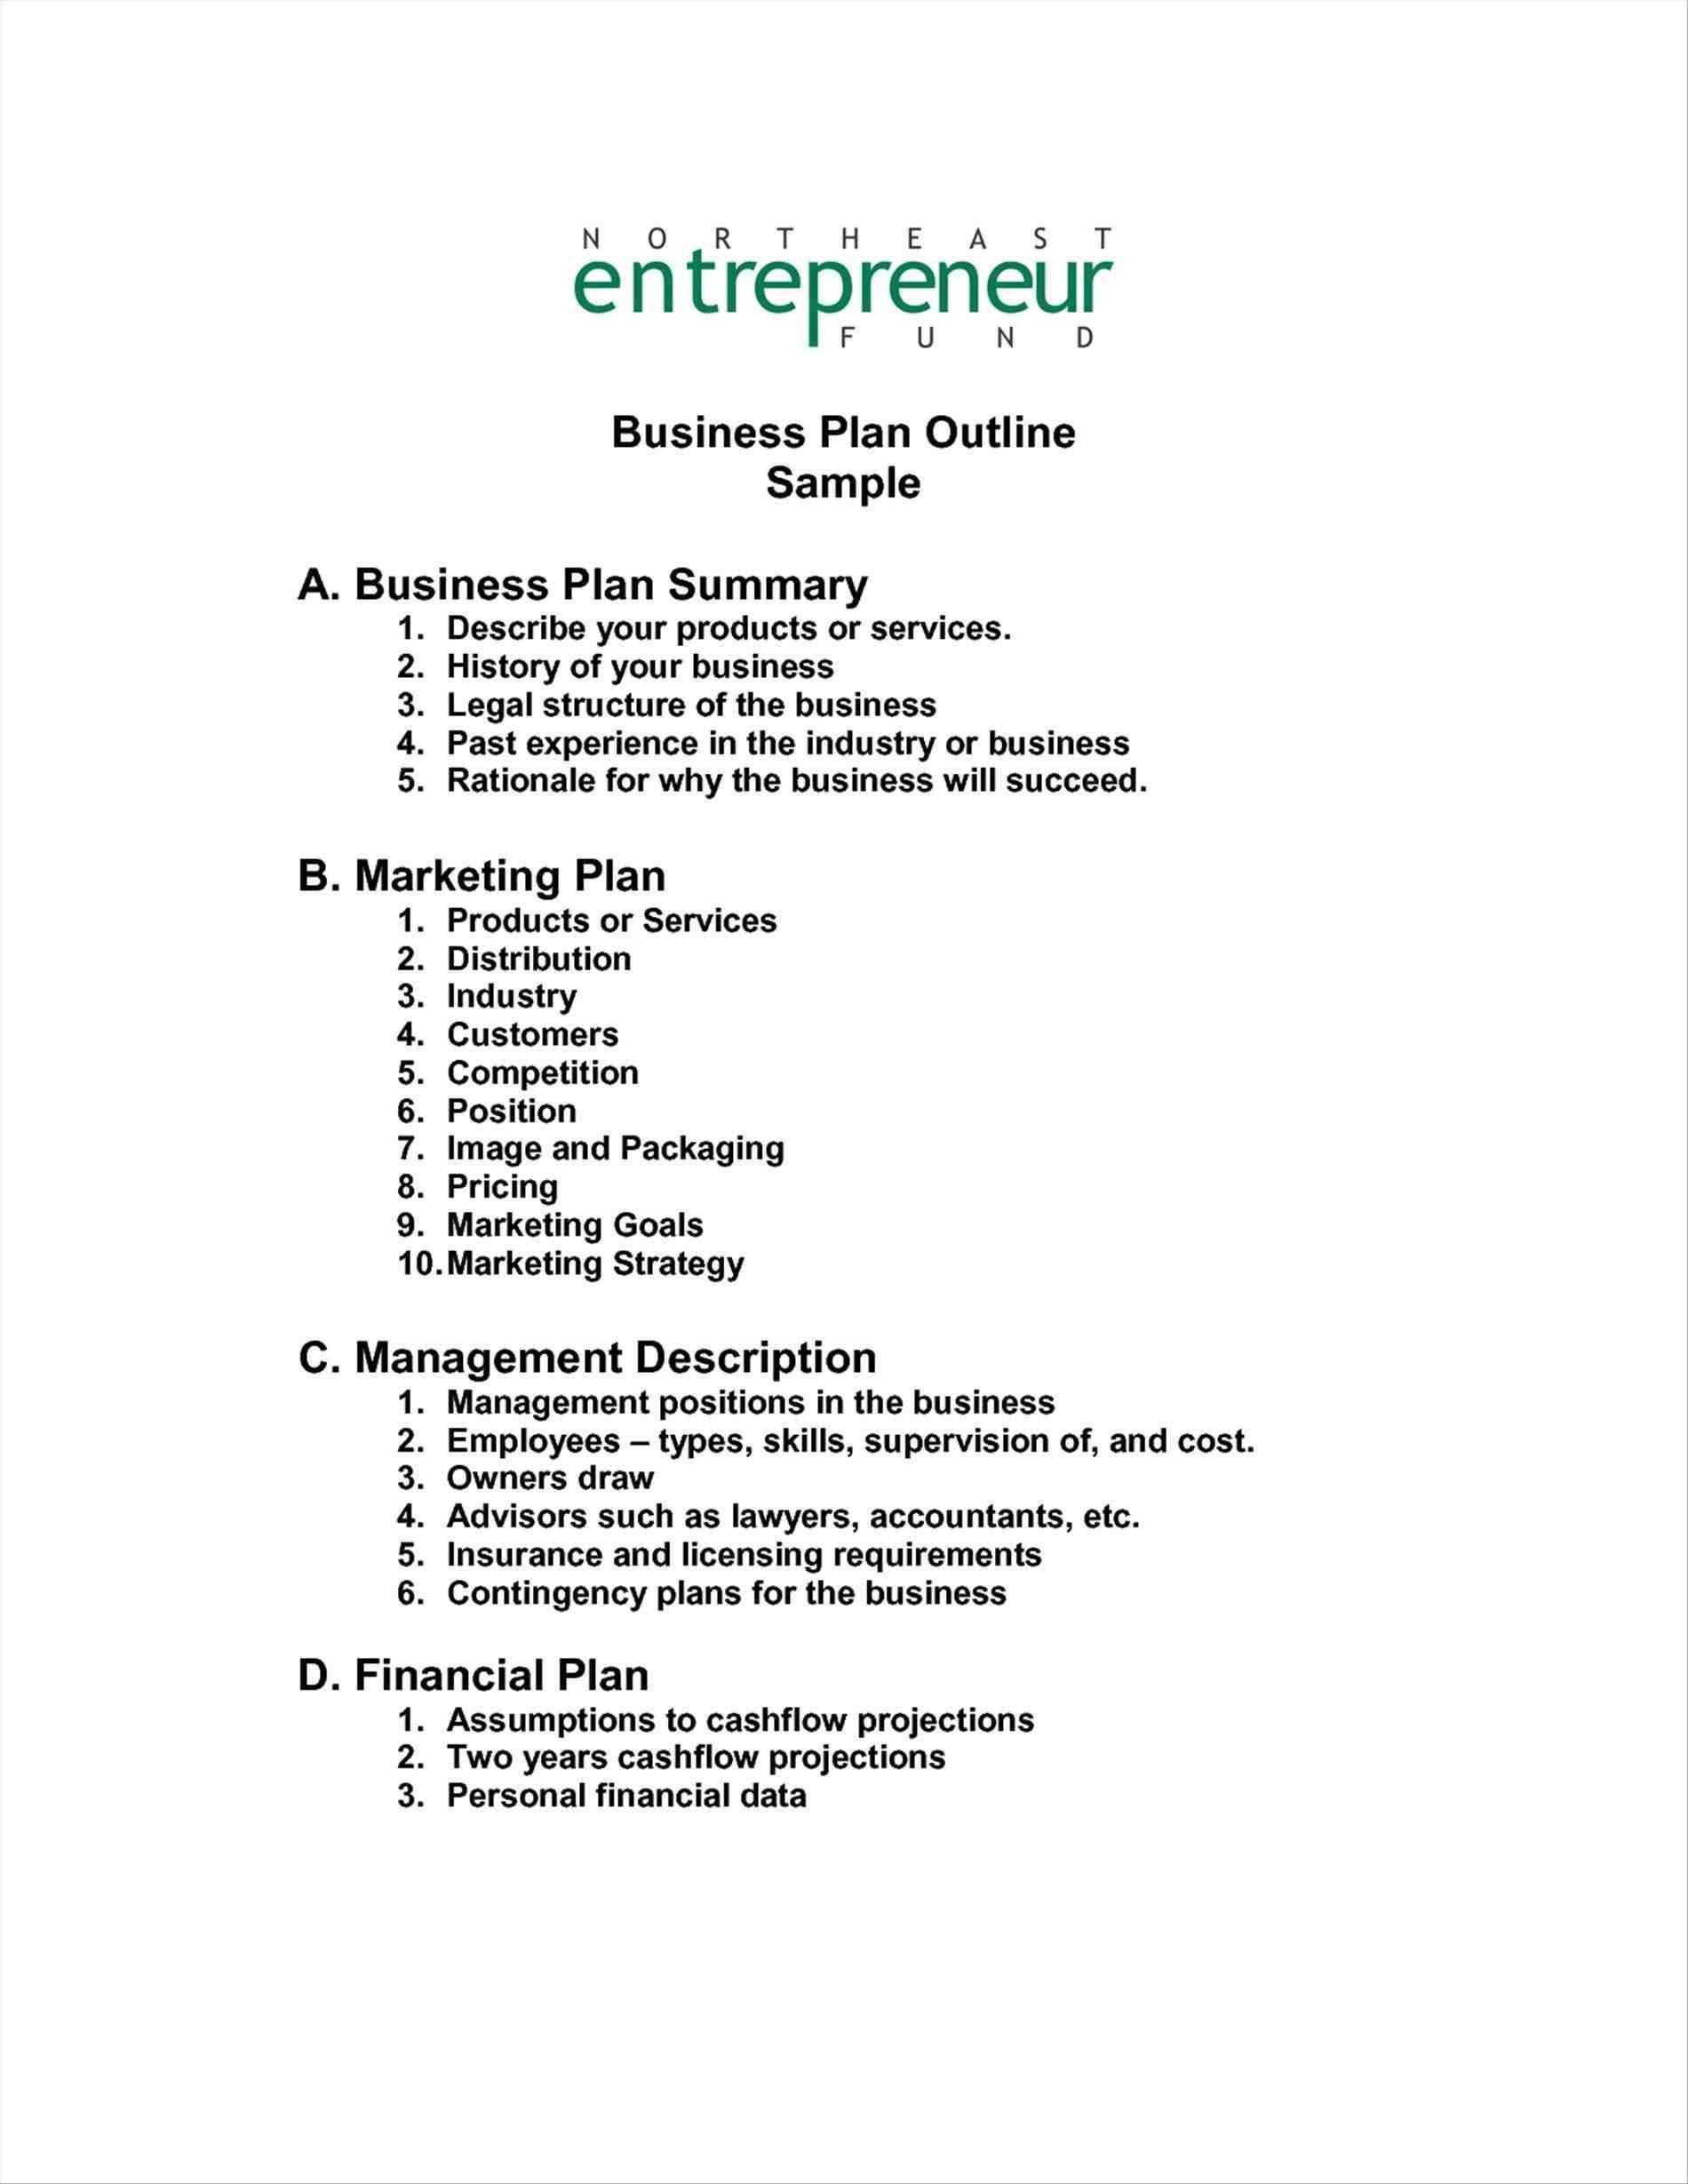 Business Plan Template Law Firm Best Of Business Overview Sample With Business Plan Template Law Firm